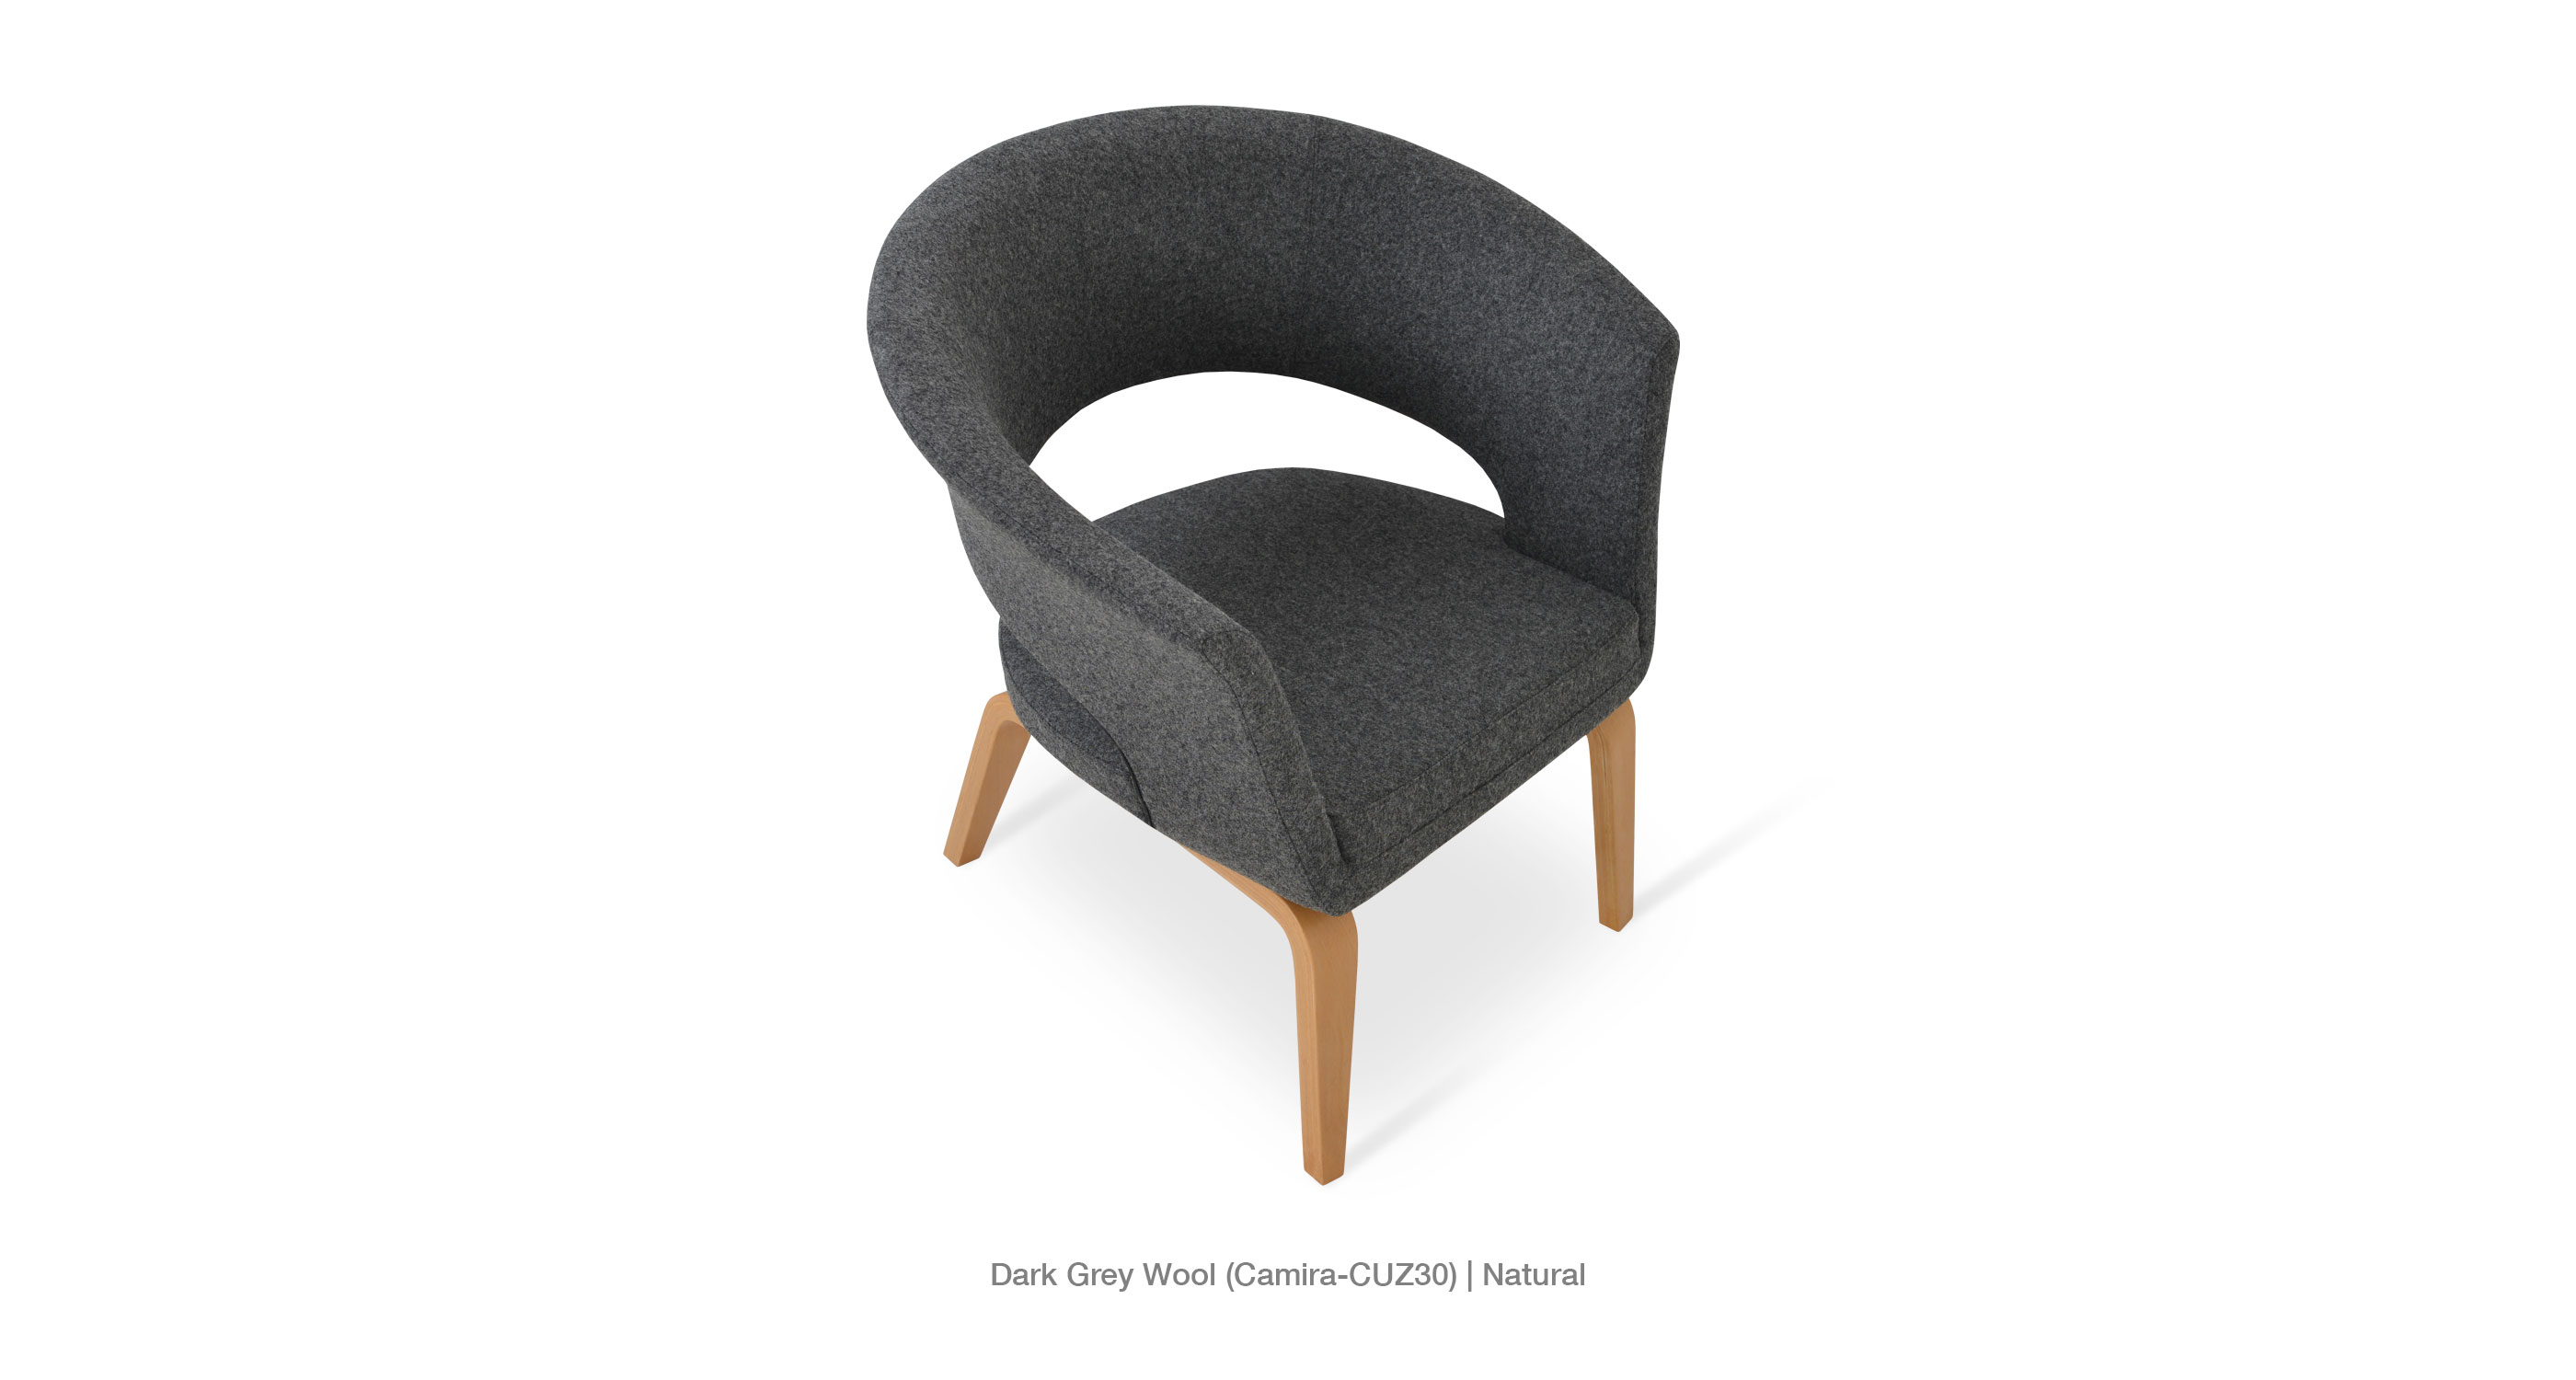 dark grey wool - natural